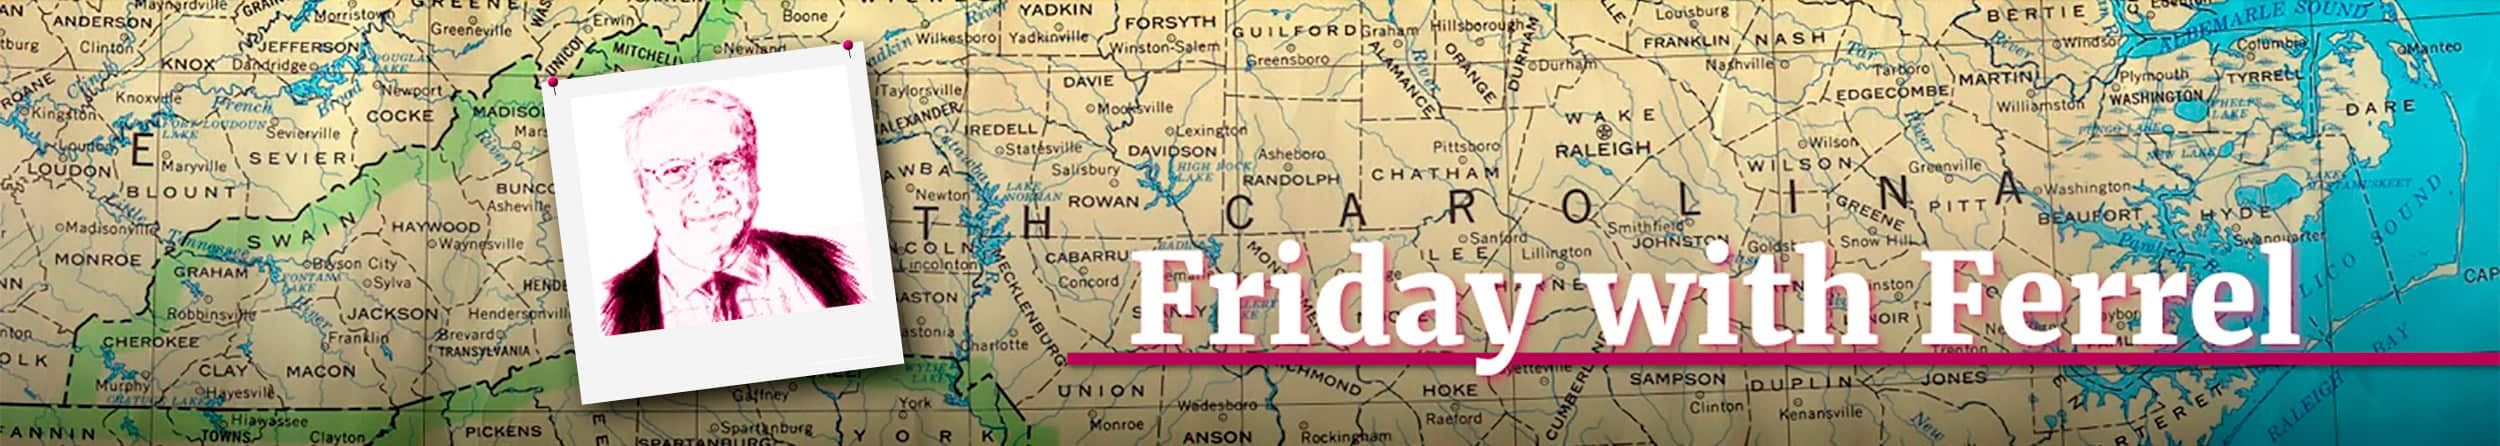 Friday with Ferrel: June 17, 2016